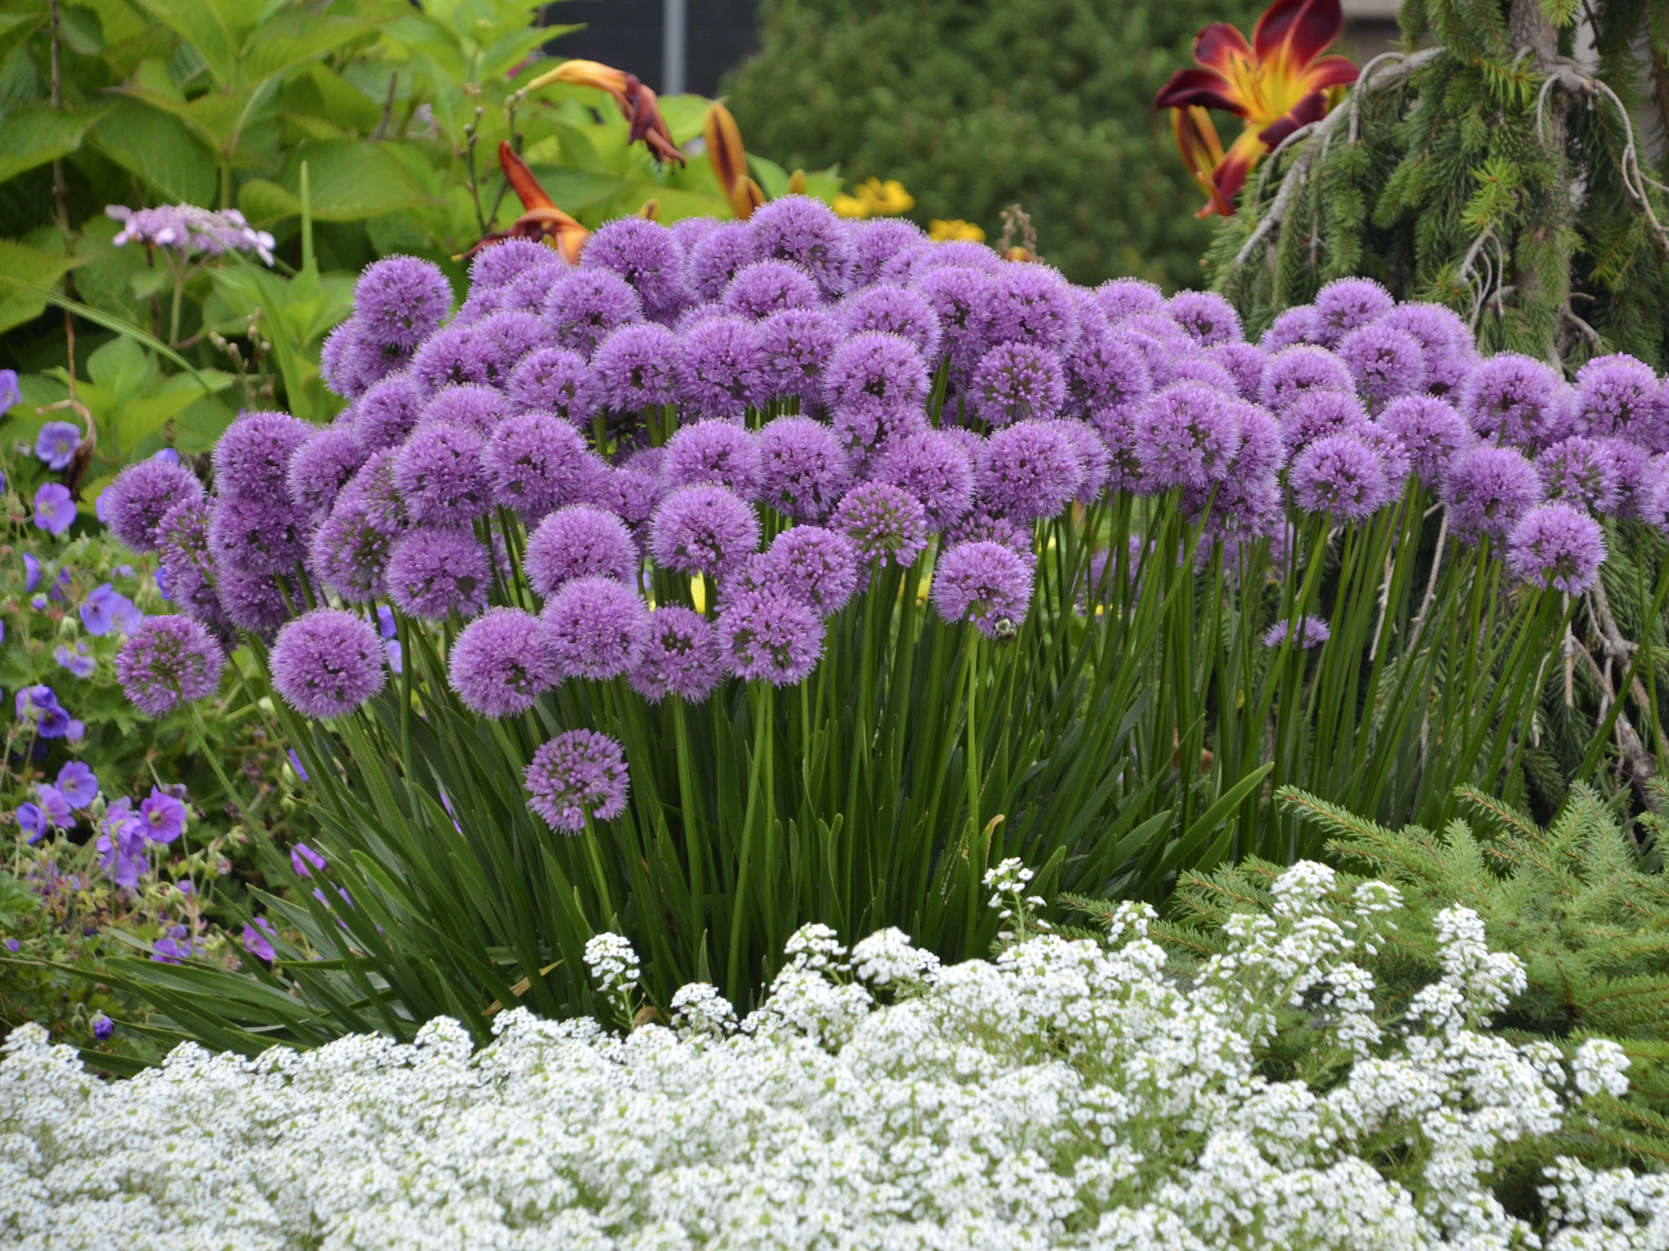 2018 perennial plant of the year allium millenium walters its hard to beat how easy this plant is to grow which is music to many gardeners ears millenium is very versatile in the garden and can thrive in a mightylinksfo